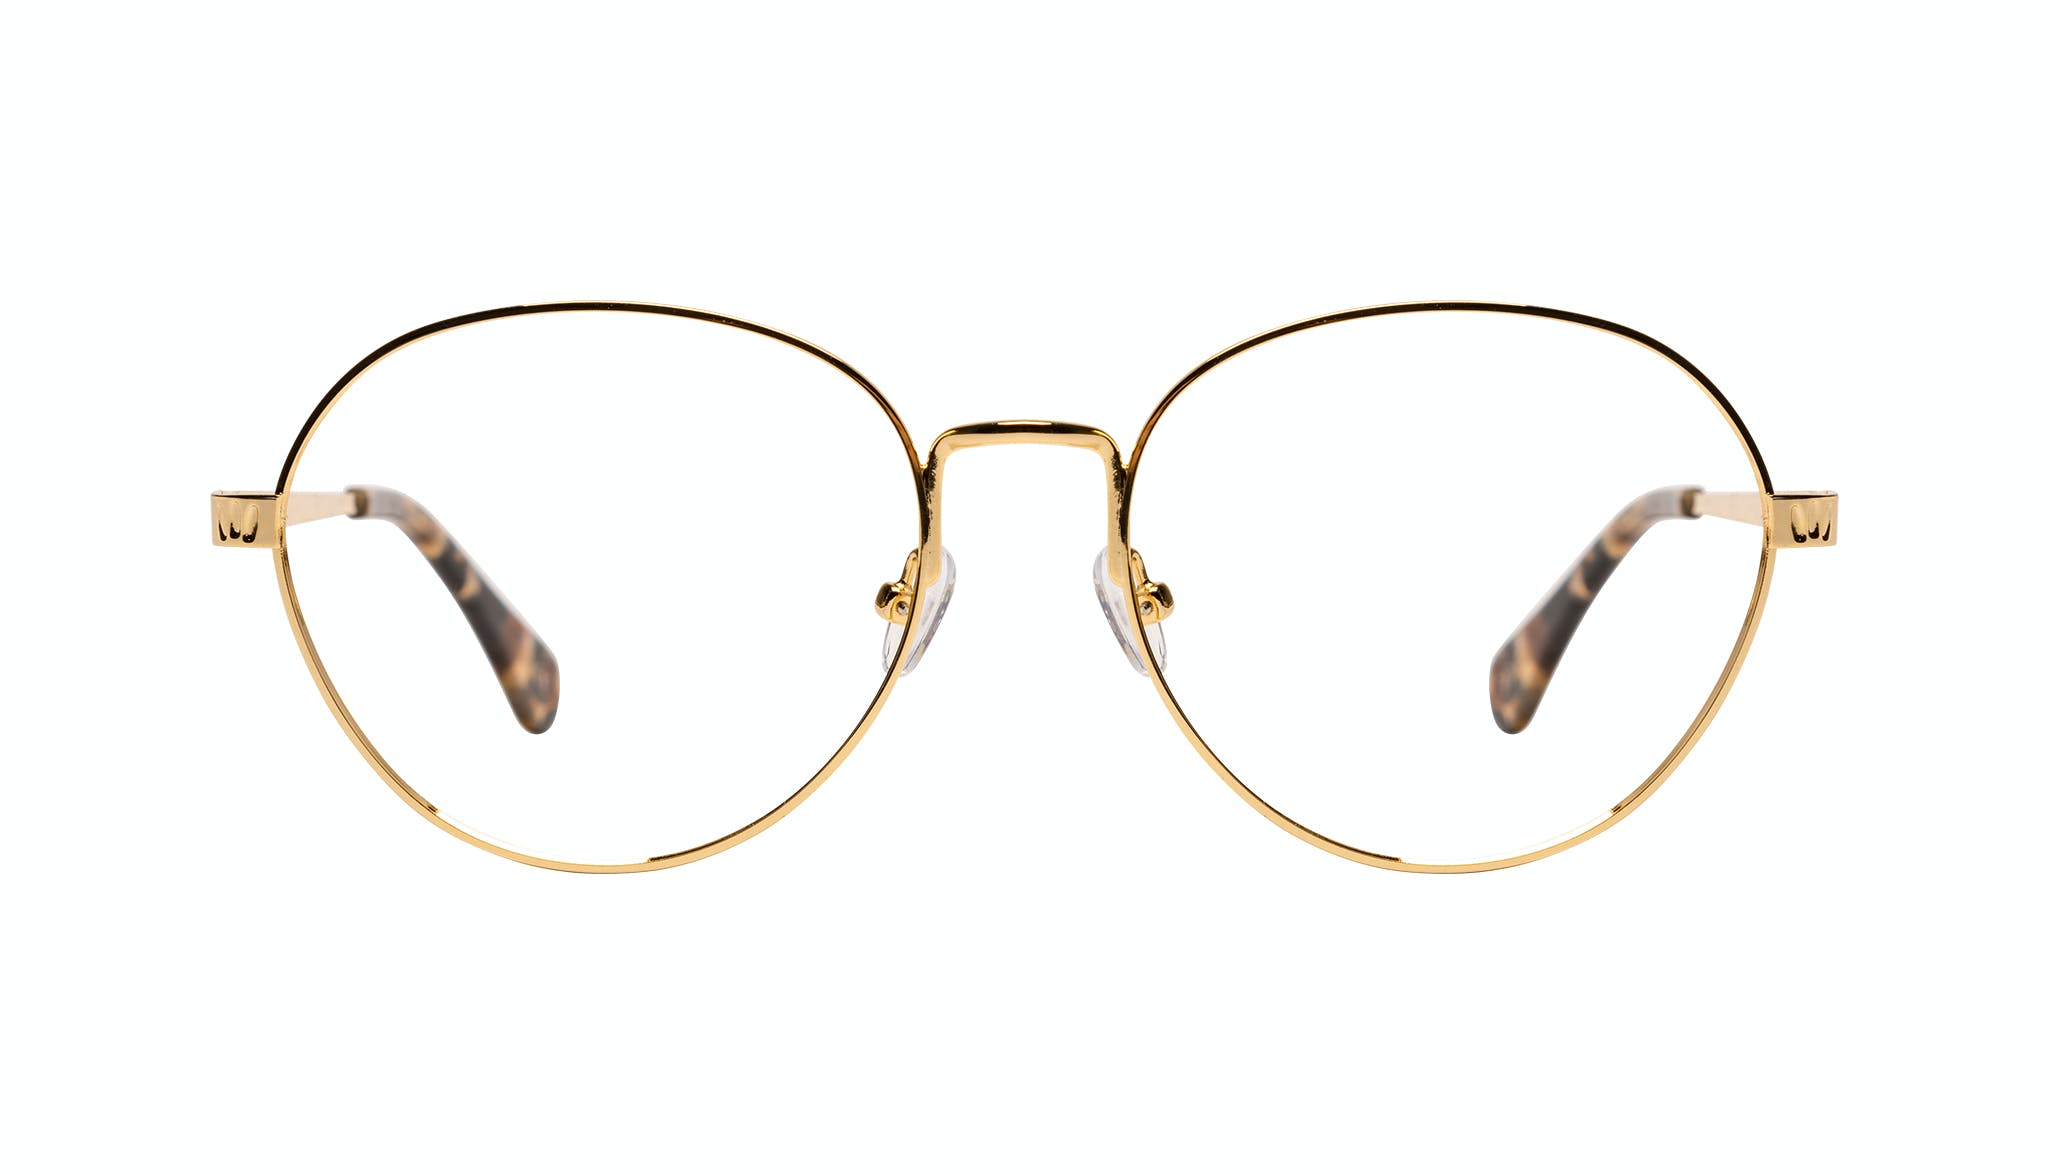 Affordable Fashion Glasses Round Eyeglasses Women Brace Plus Gold